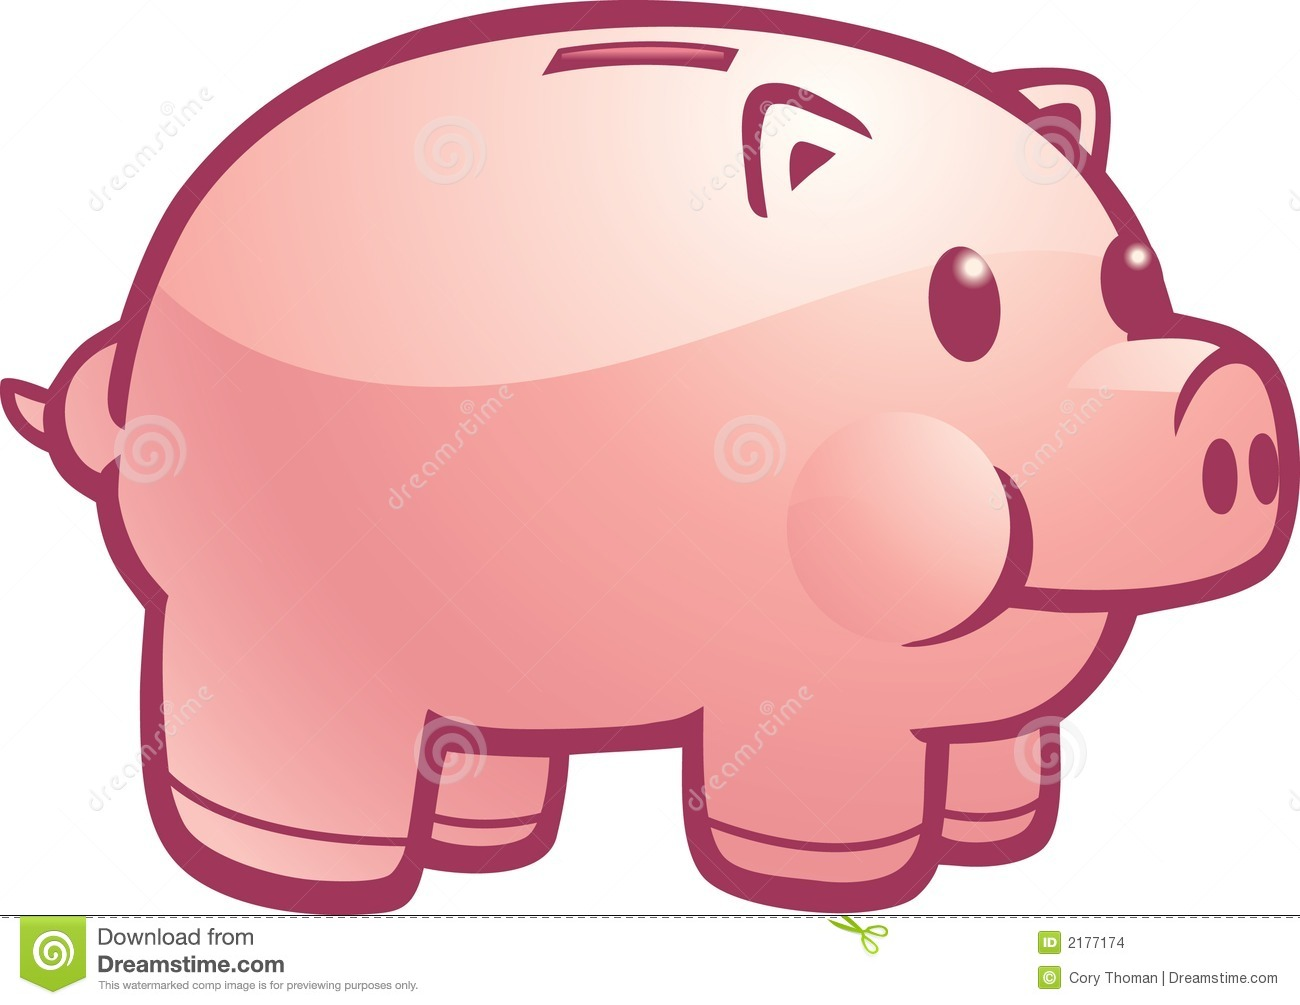 Piggy Bank Clipart Cartoon piggy bank stock photos, images, & pictures ...